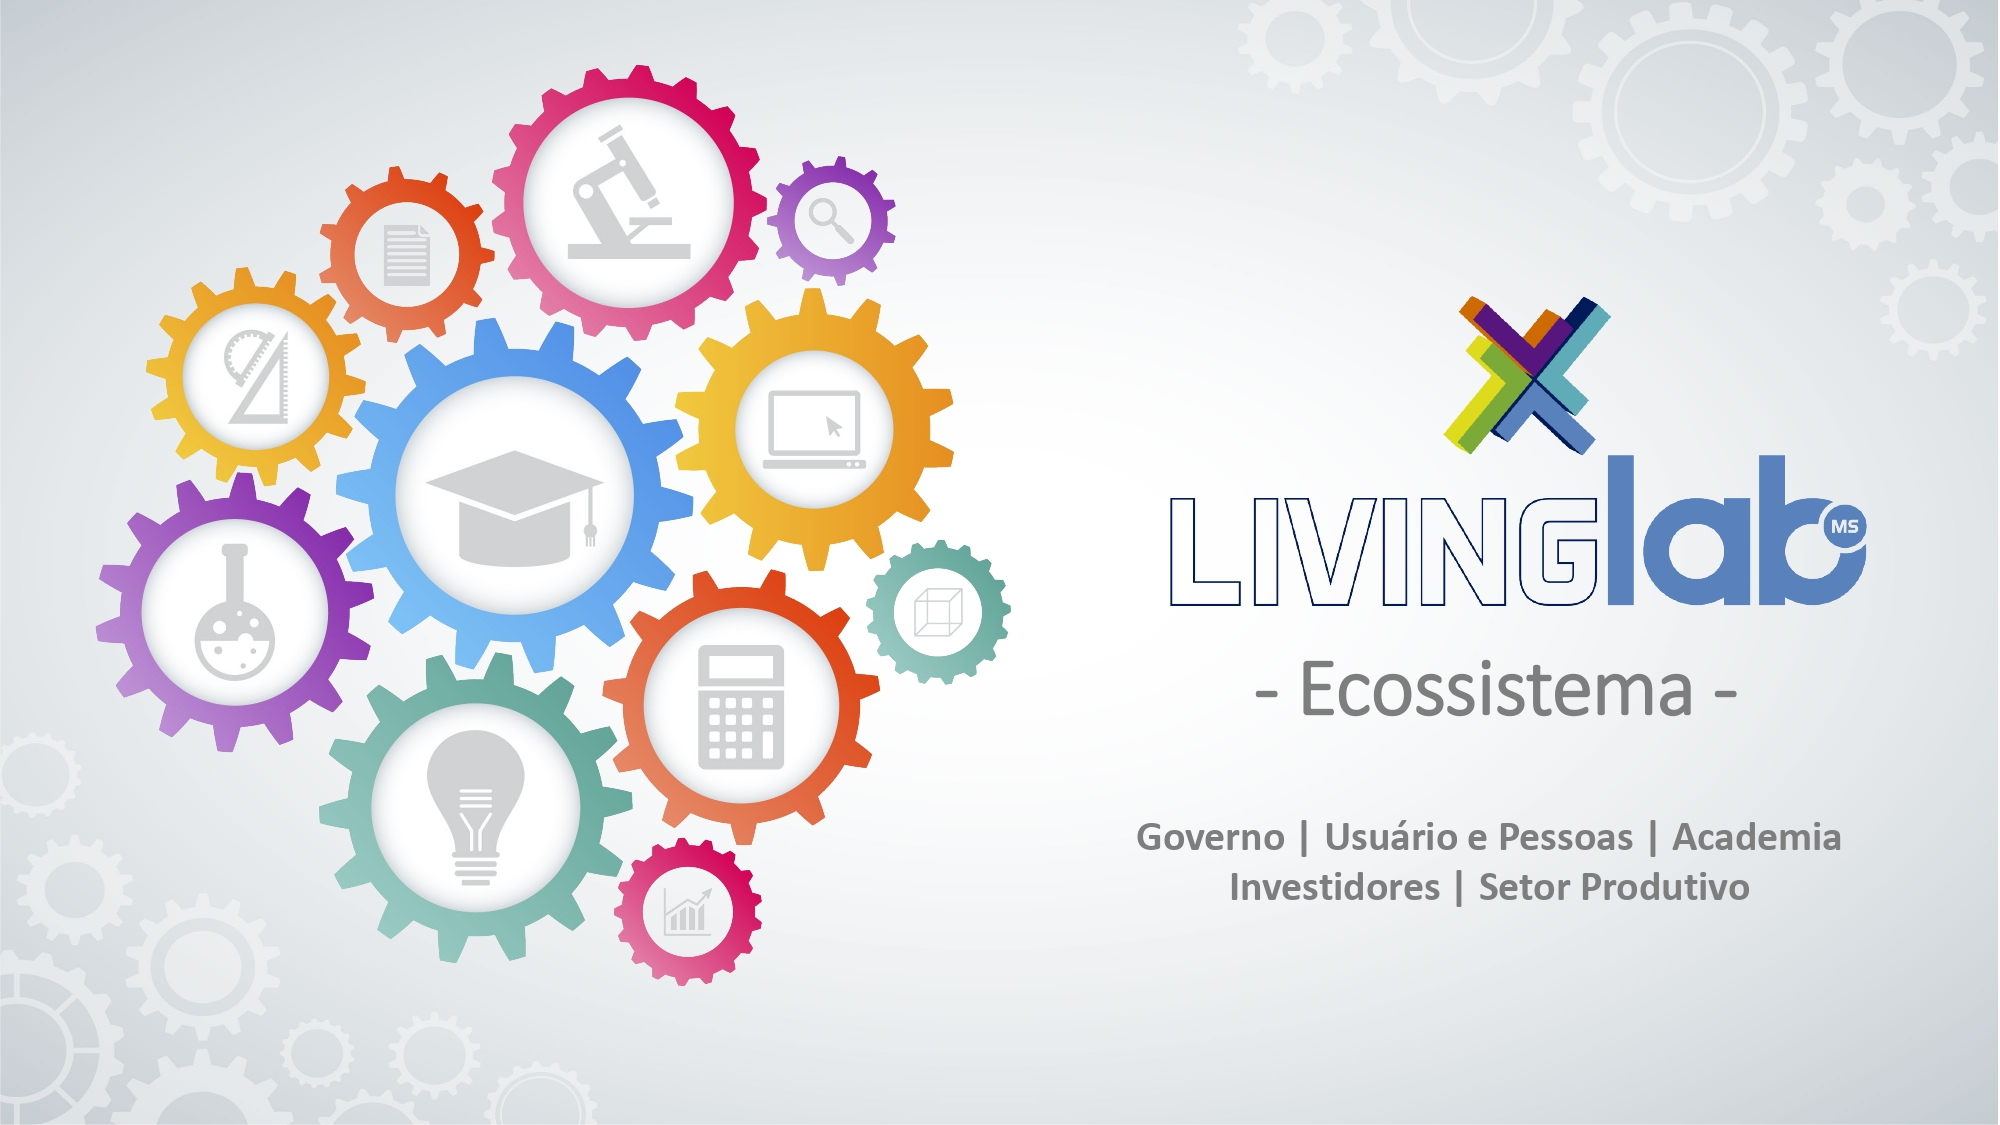 Eixos de atuação do Living Lab MS